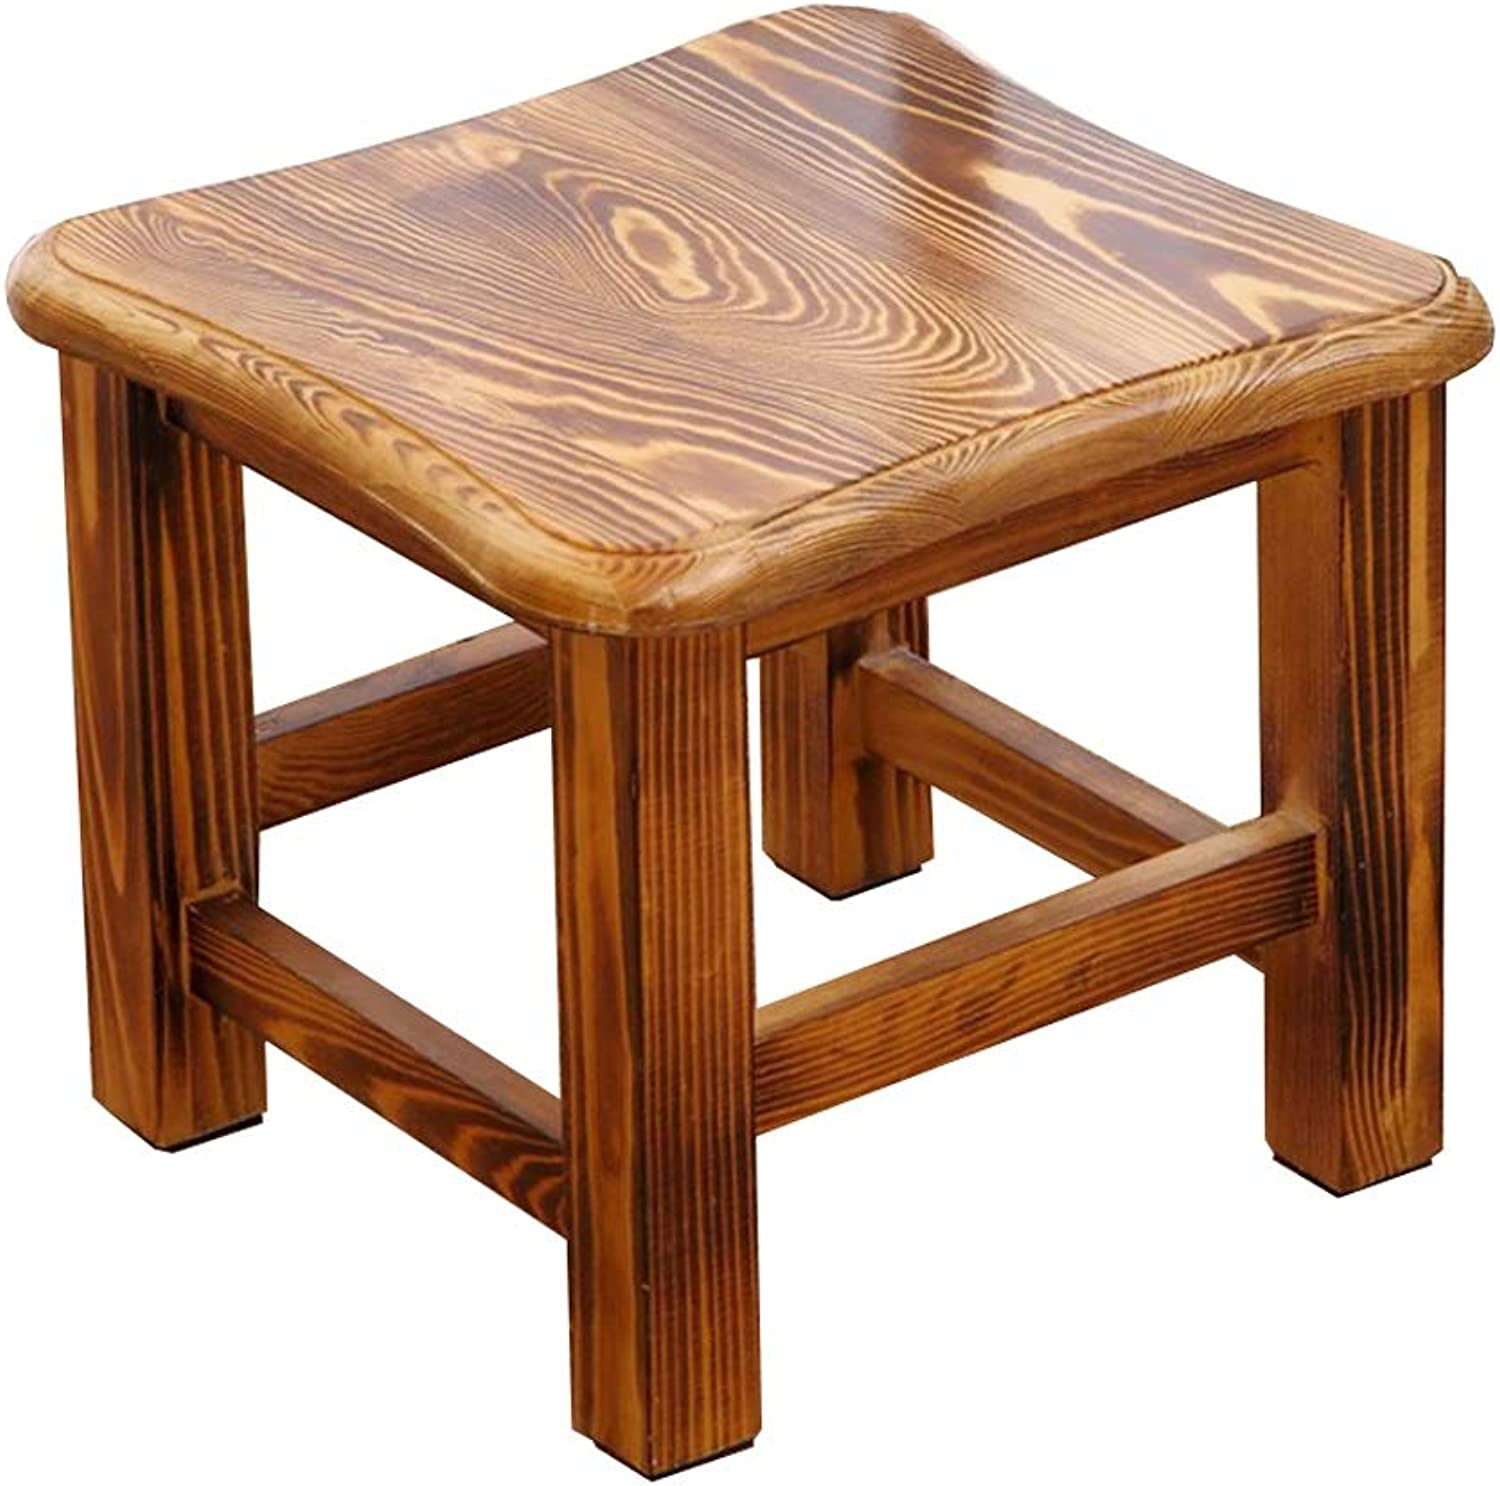 Stools Retro Wooden Stool Footstool Waterproof Living Room Coffee Table Stool Environmental Predection Light Weight (color   B)